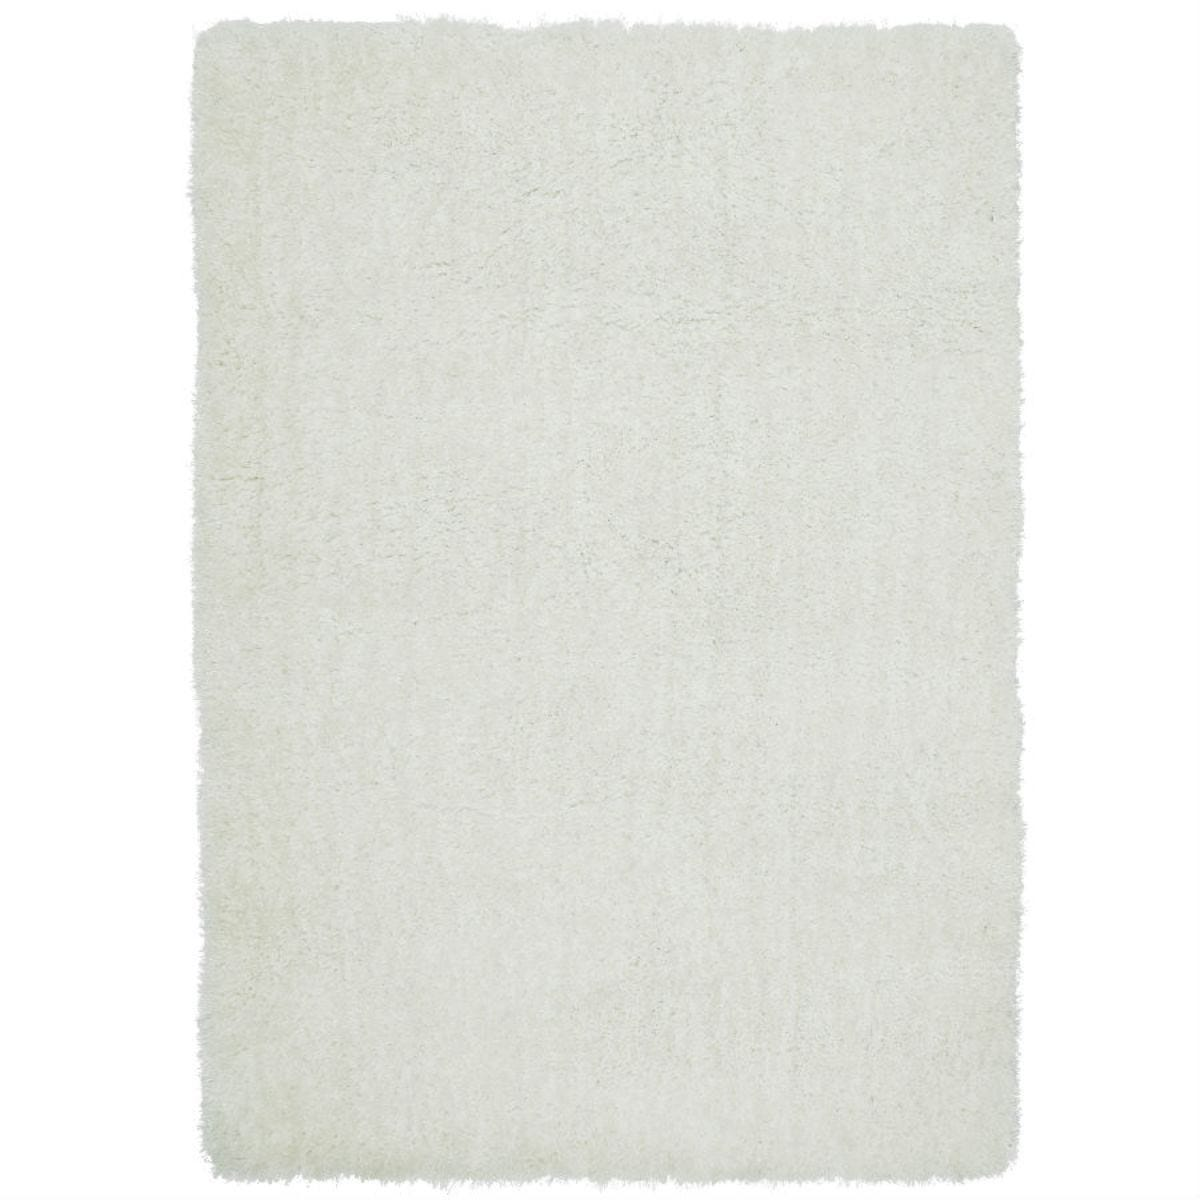 Asiatic Diva Rug 60x120cm - White